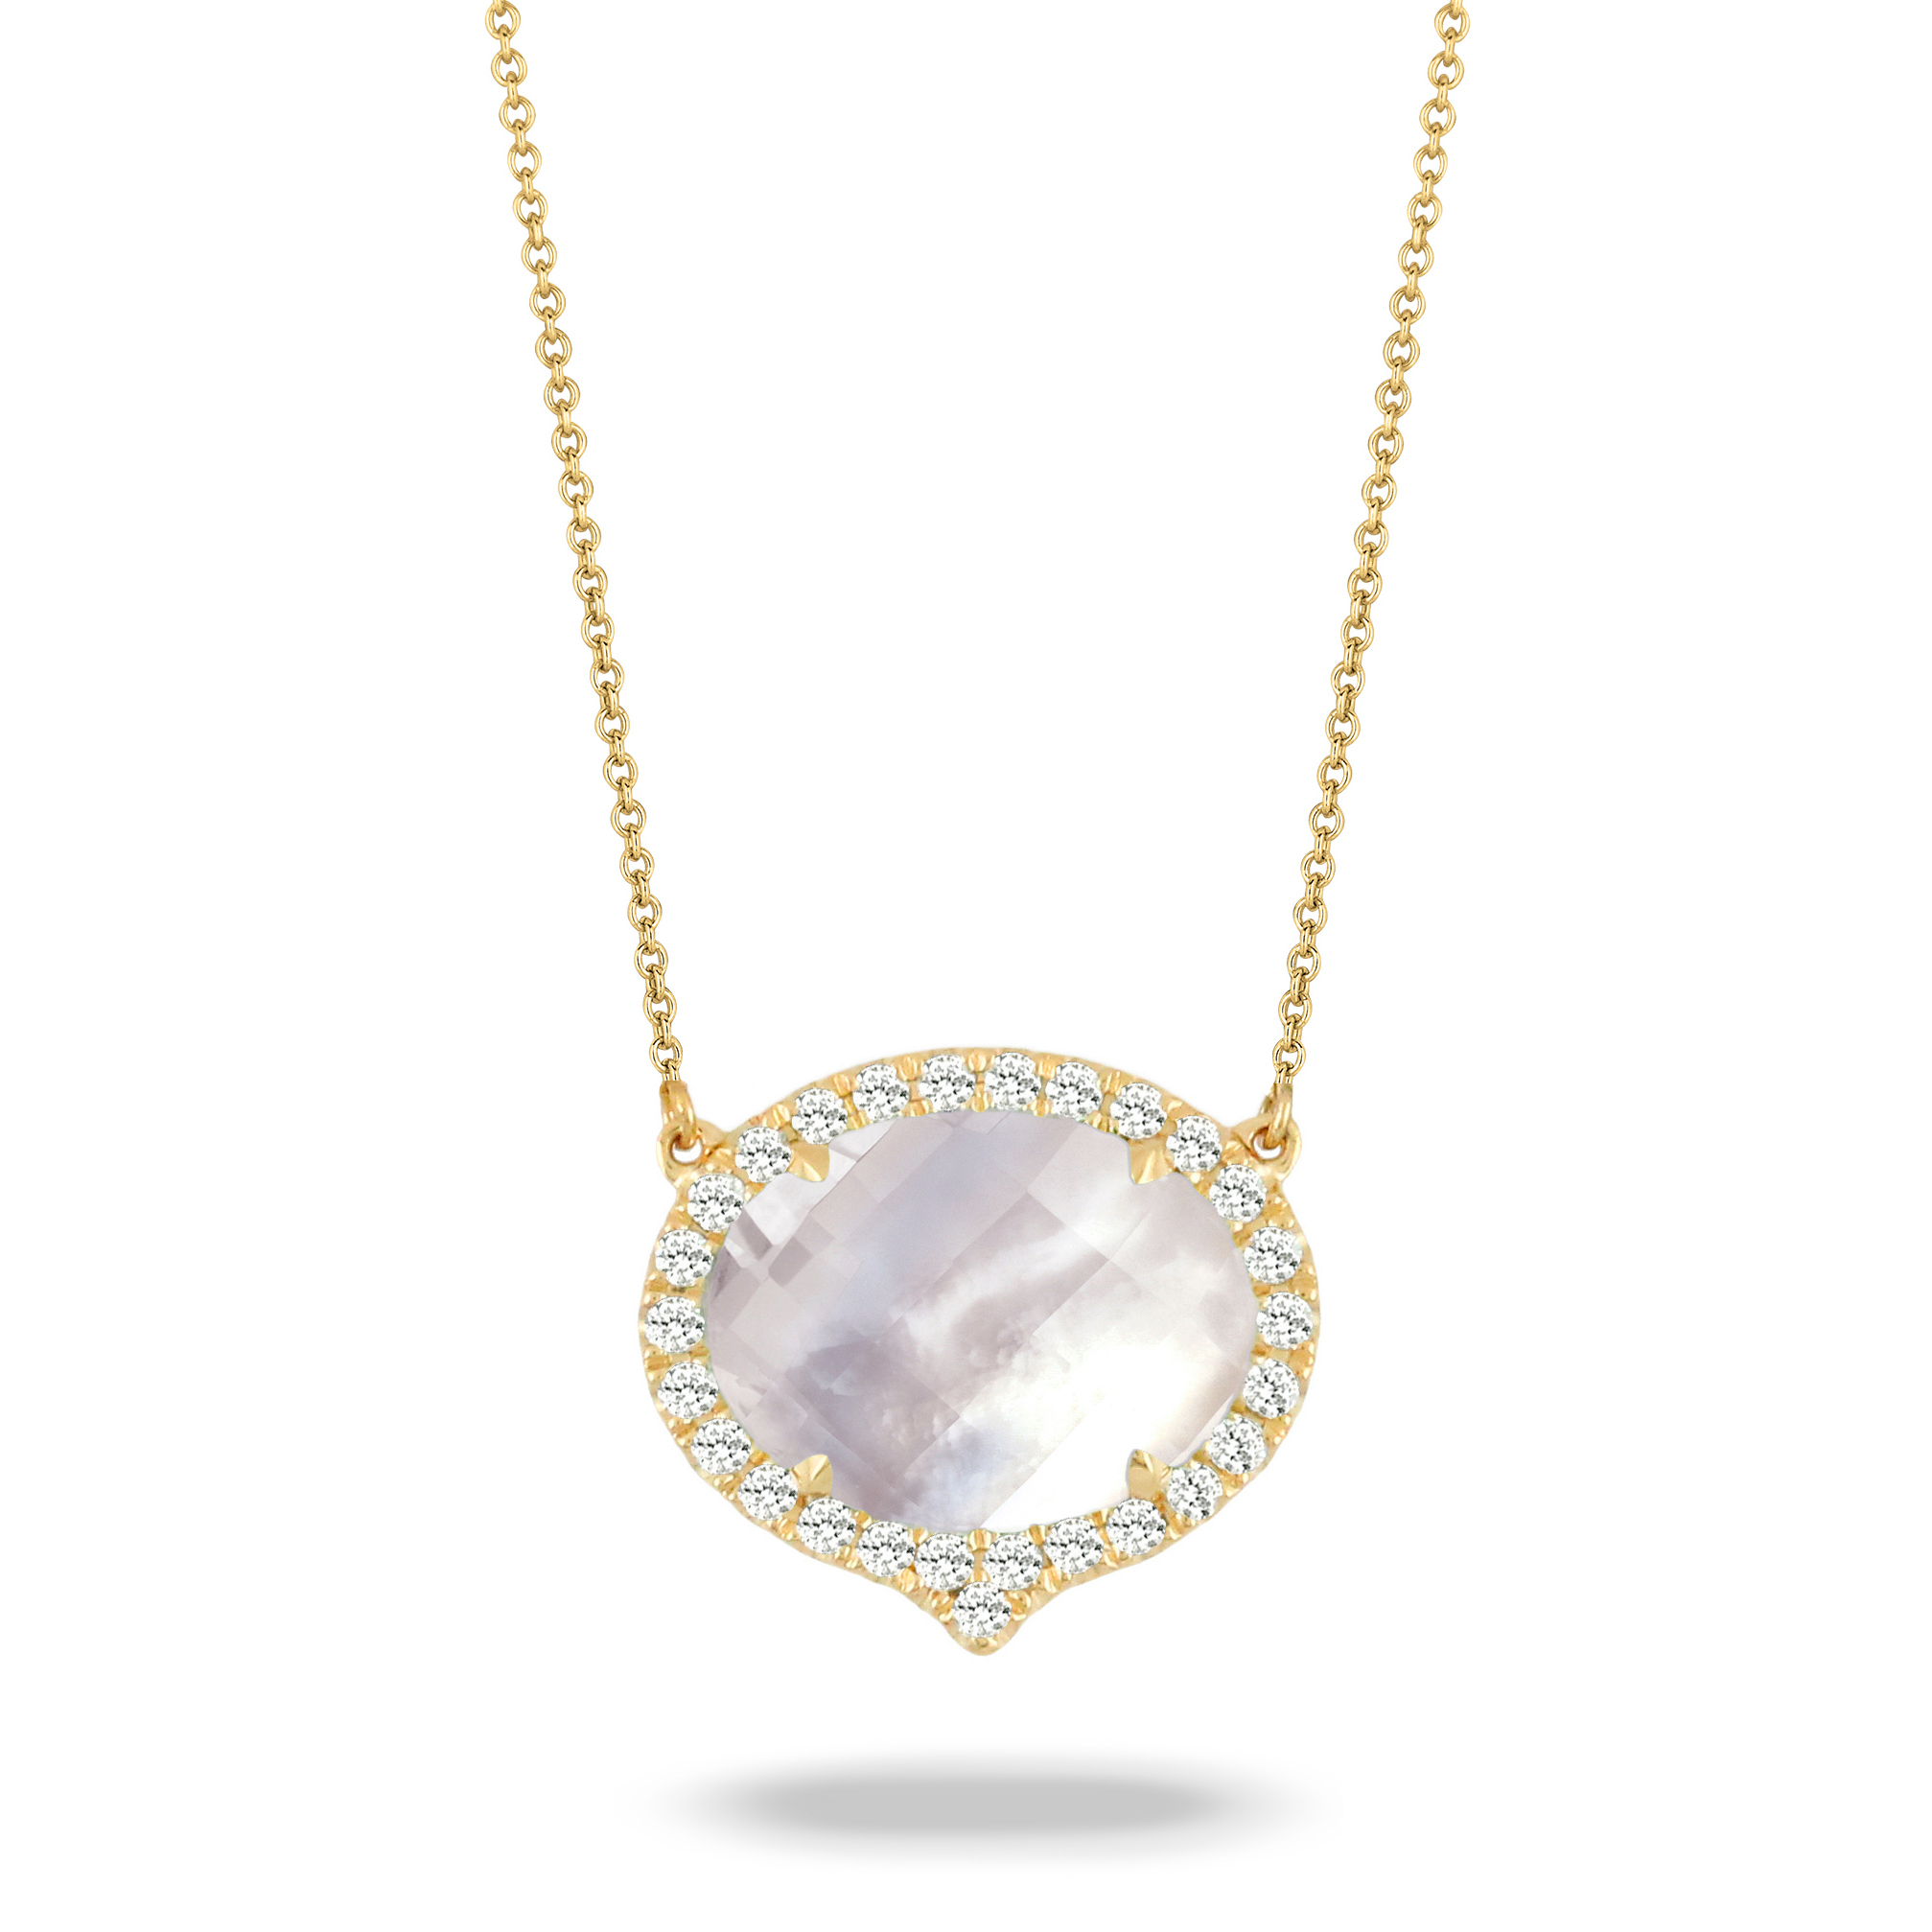 18K Yellow Gold Pearl Necklace - 18K Yellow Gold Diamond Necklace With Clear Quartz Over White Mother Of Pearl